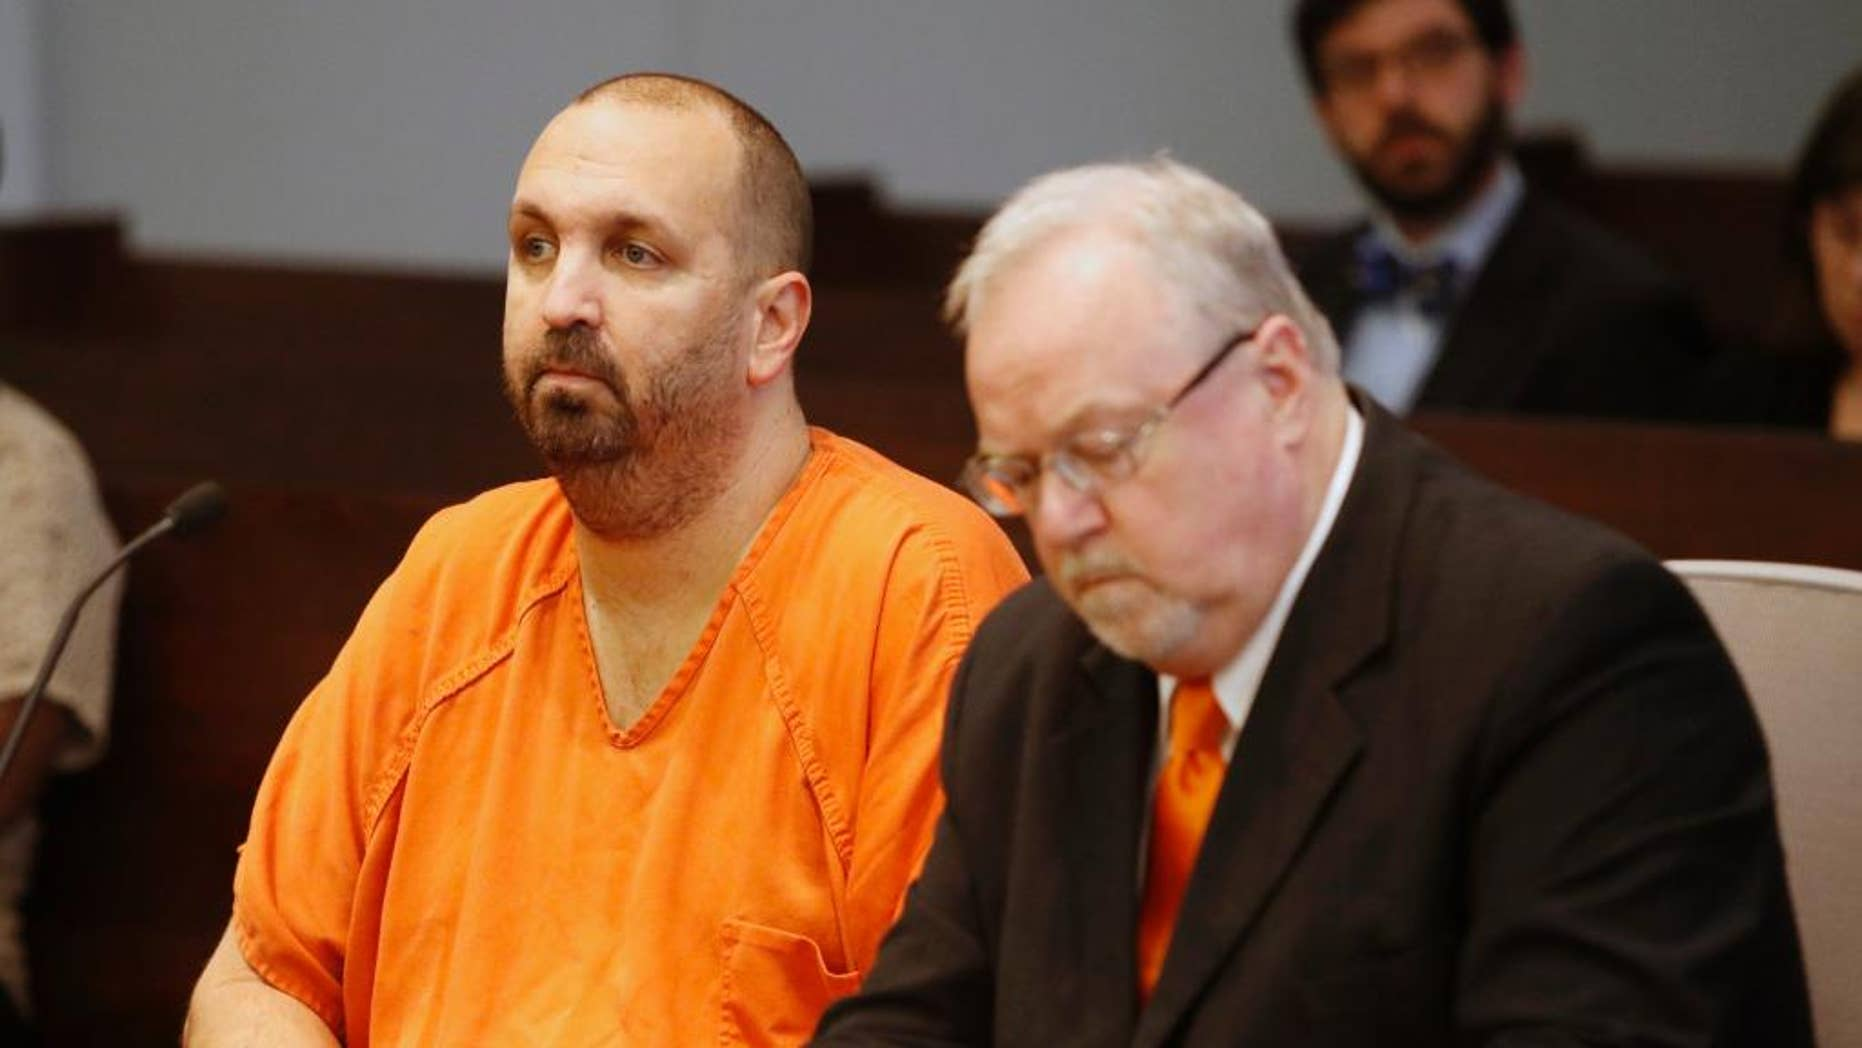 April 6, 2015: Murder defendant Craig Stephen Hicks, 46, left, listens while his co-defense counsel Terry Alford makes notes during a death penalty hearing for Hicks.